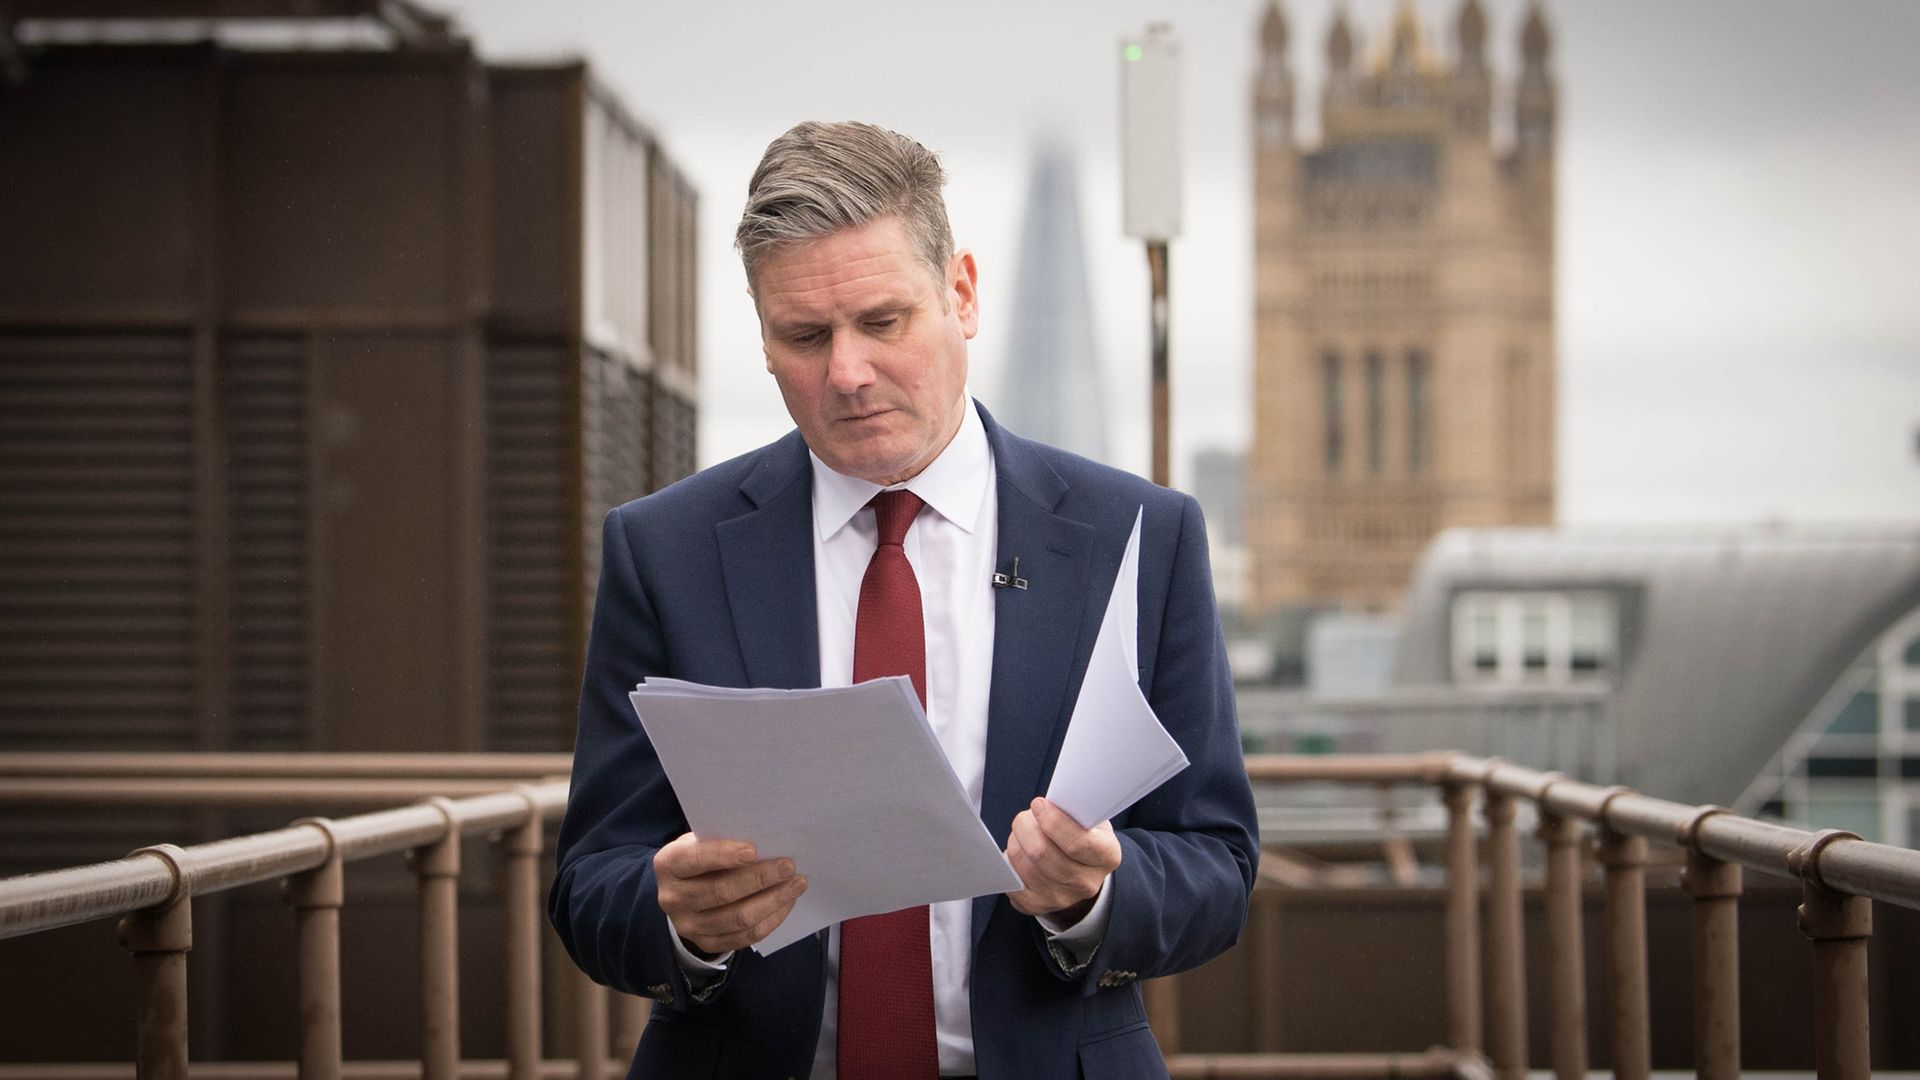 Labour leader Sir Keir Starmer reads through his notes shortly before delivering a virtual speech - Credit: PA